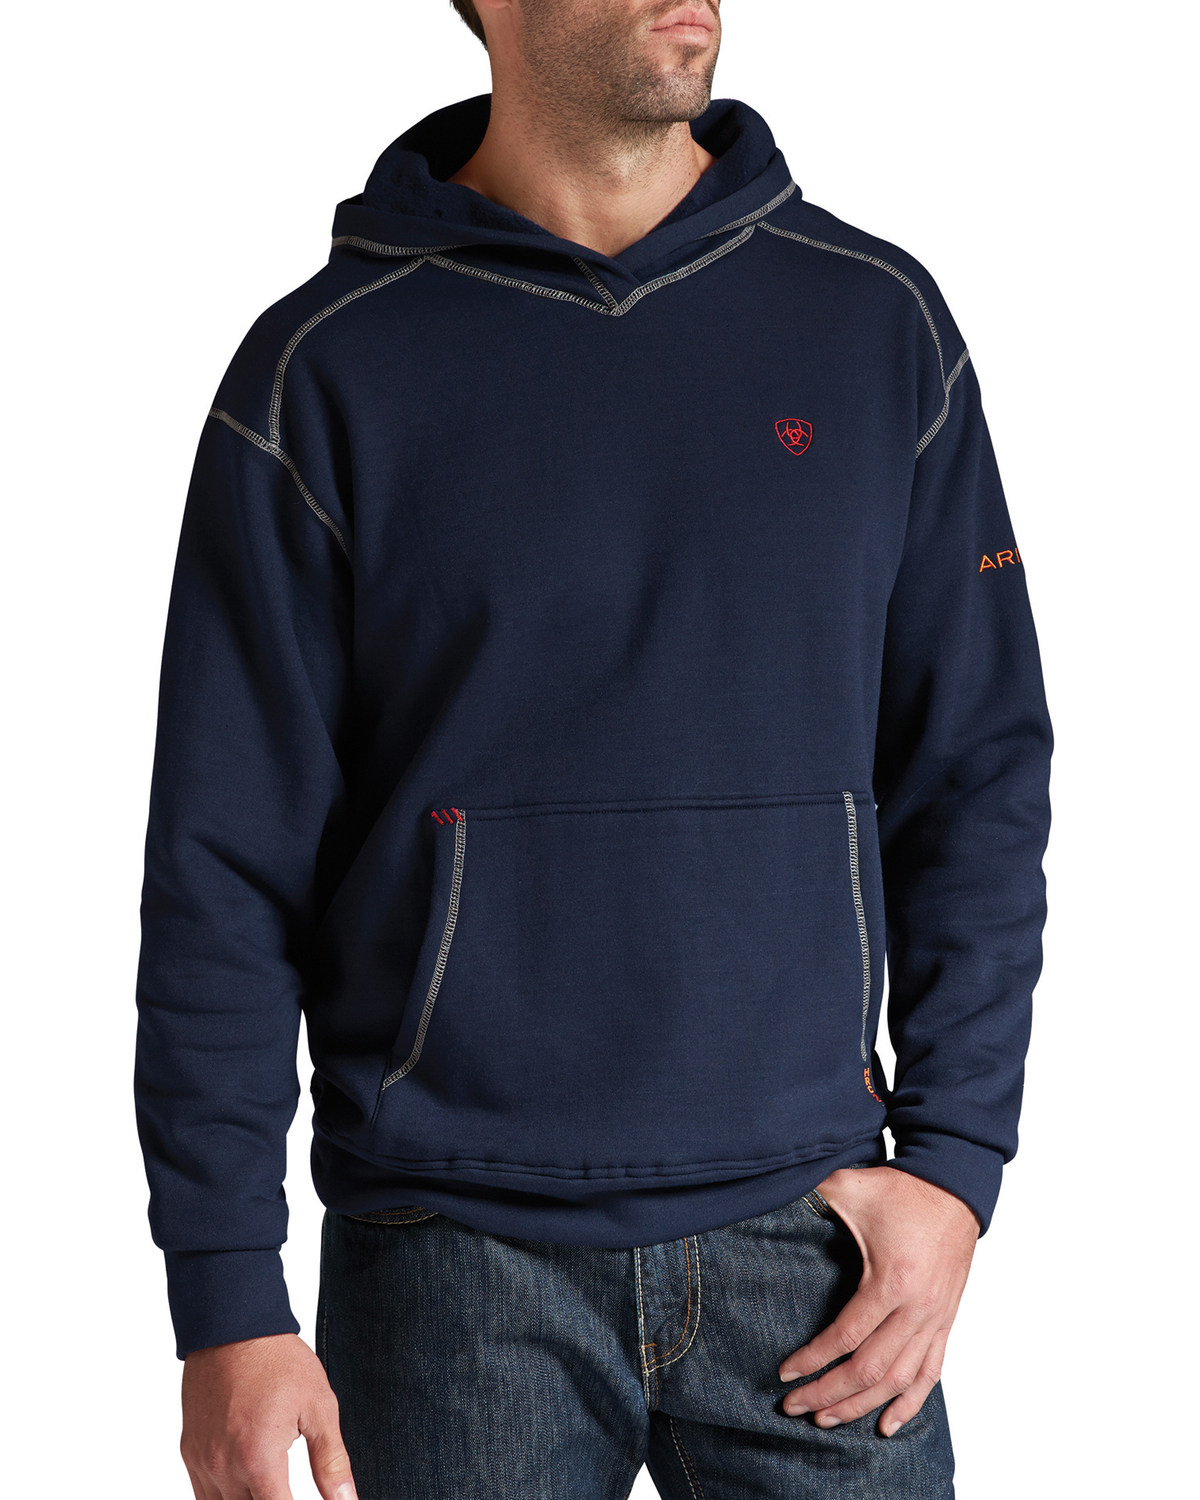 49eb490eaa57 Ariat Flame-Resistant Polartec Hoodie - Big and Tall